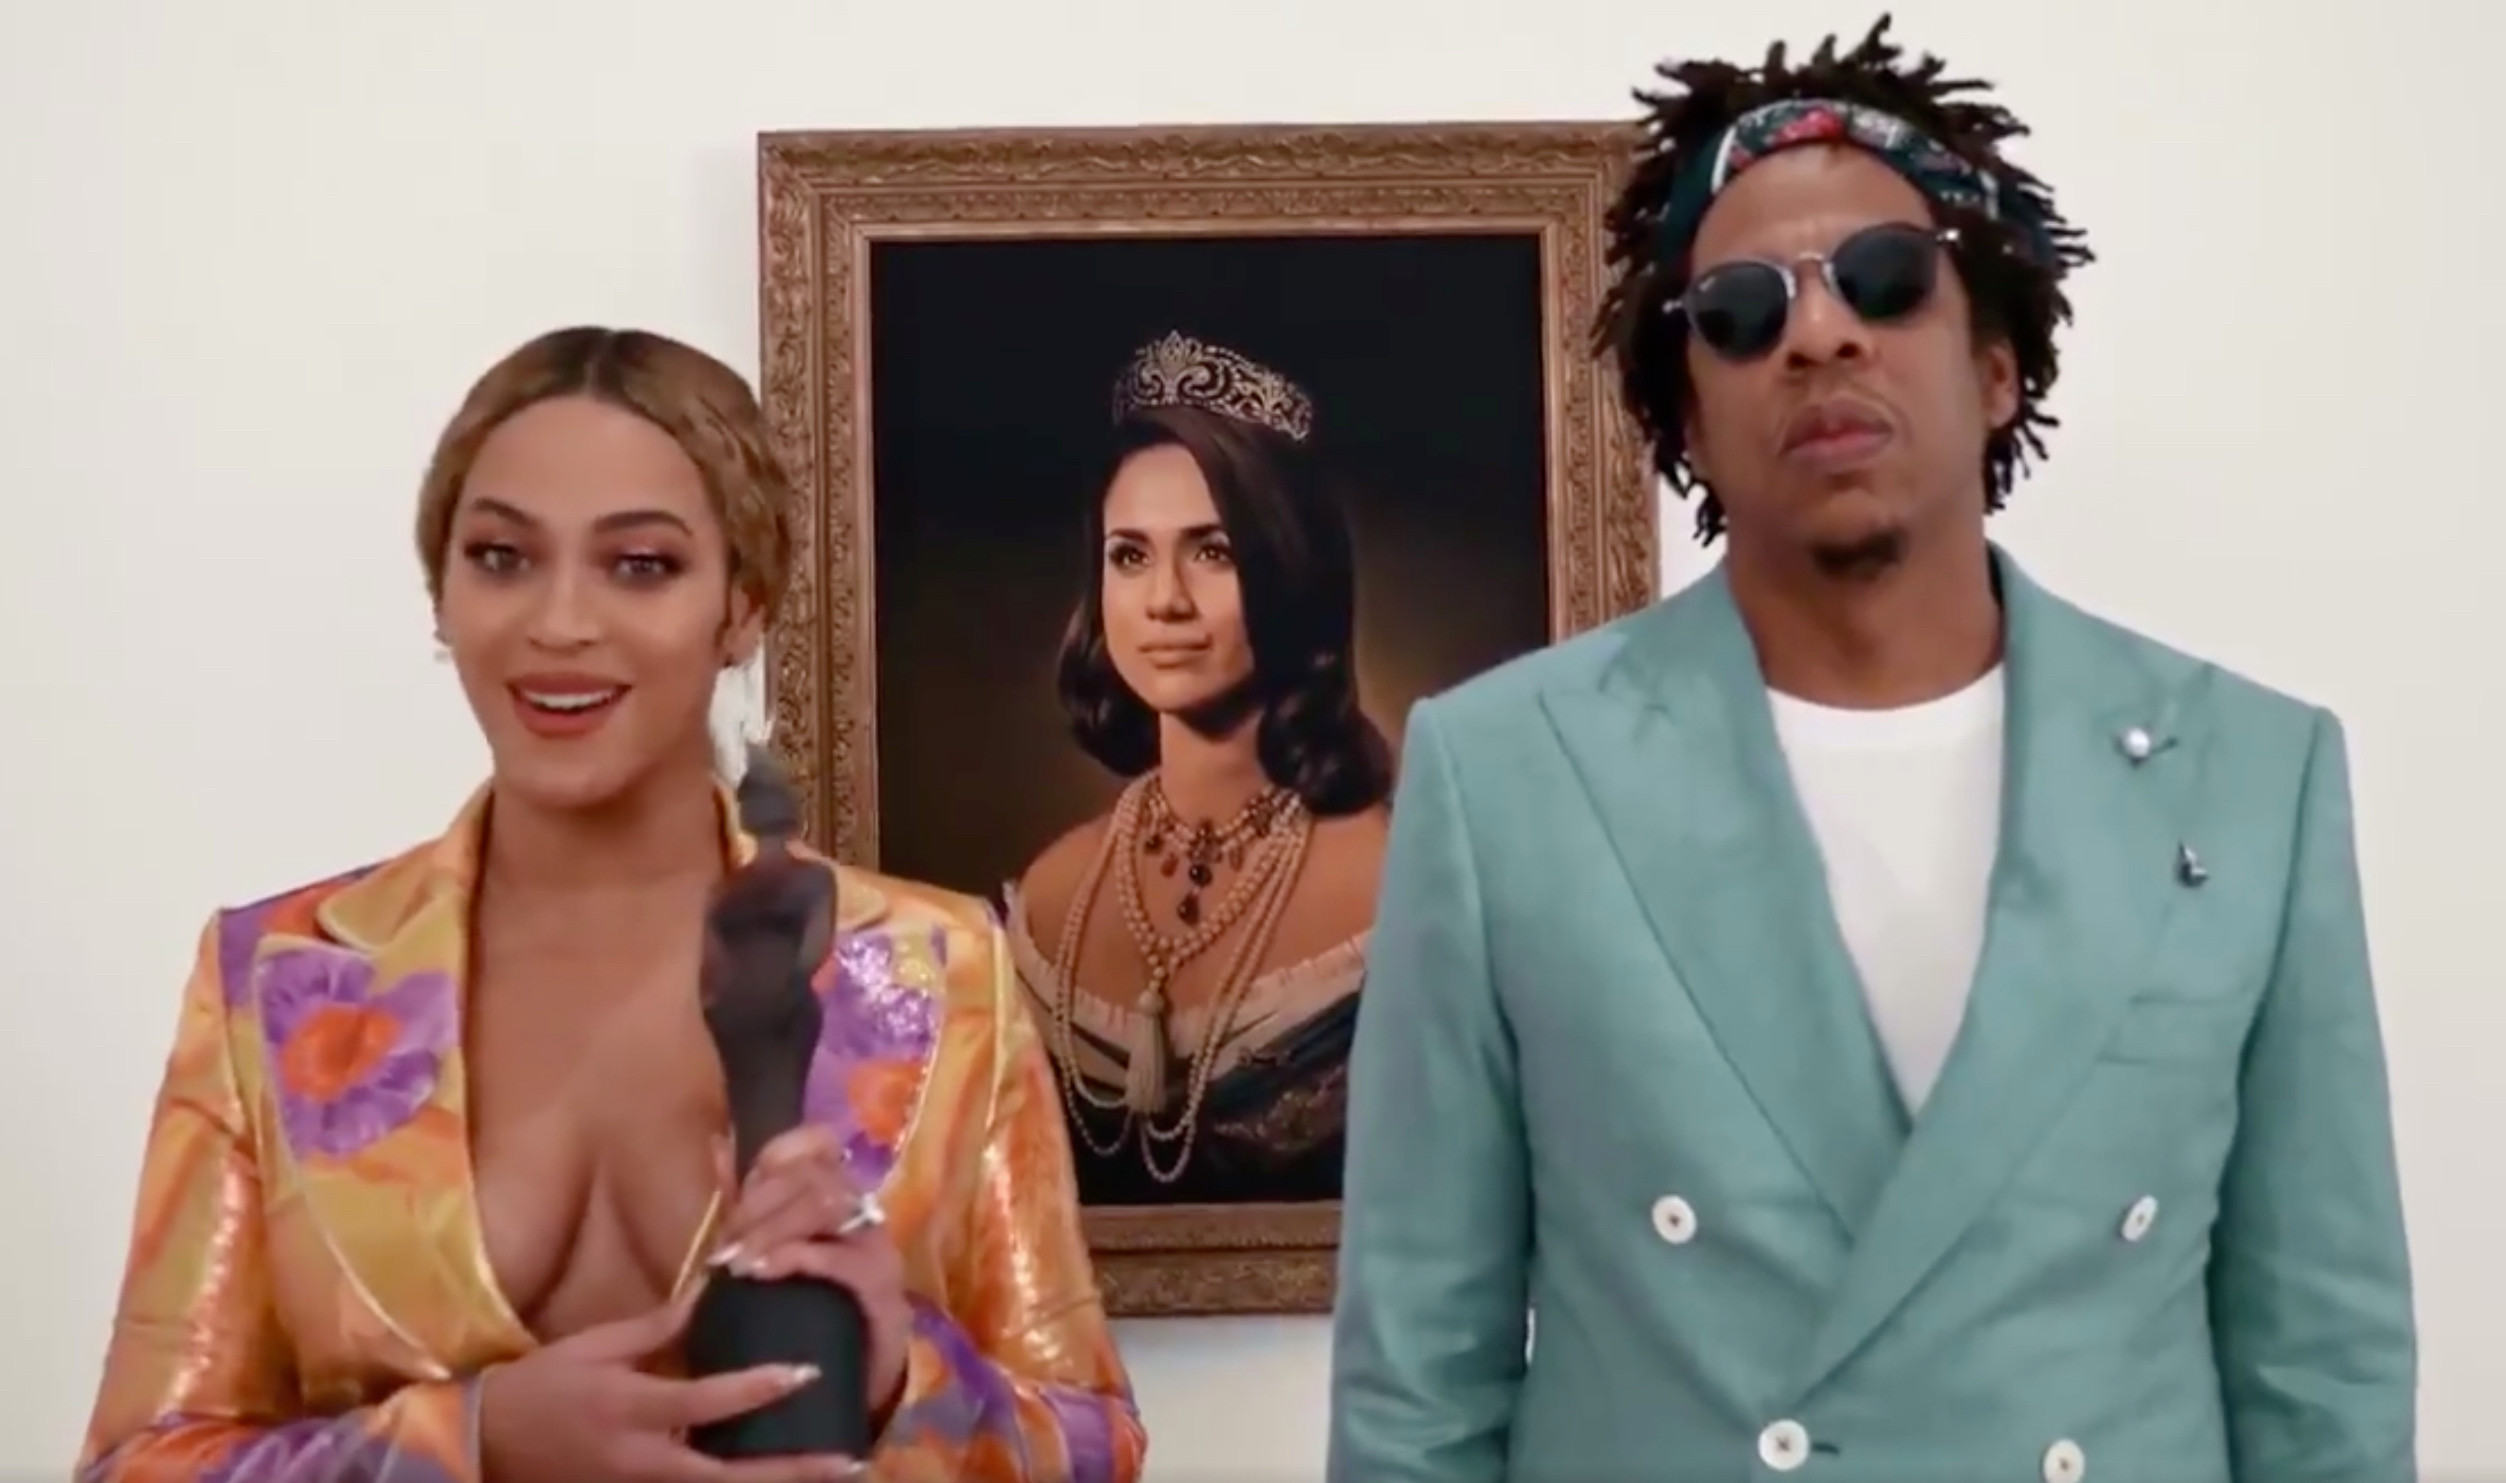 Jay Z and Beyonce receive BRIT Awards [RollingStone]